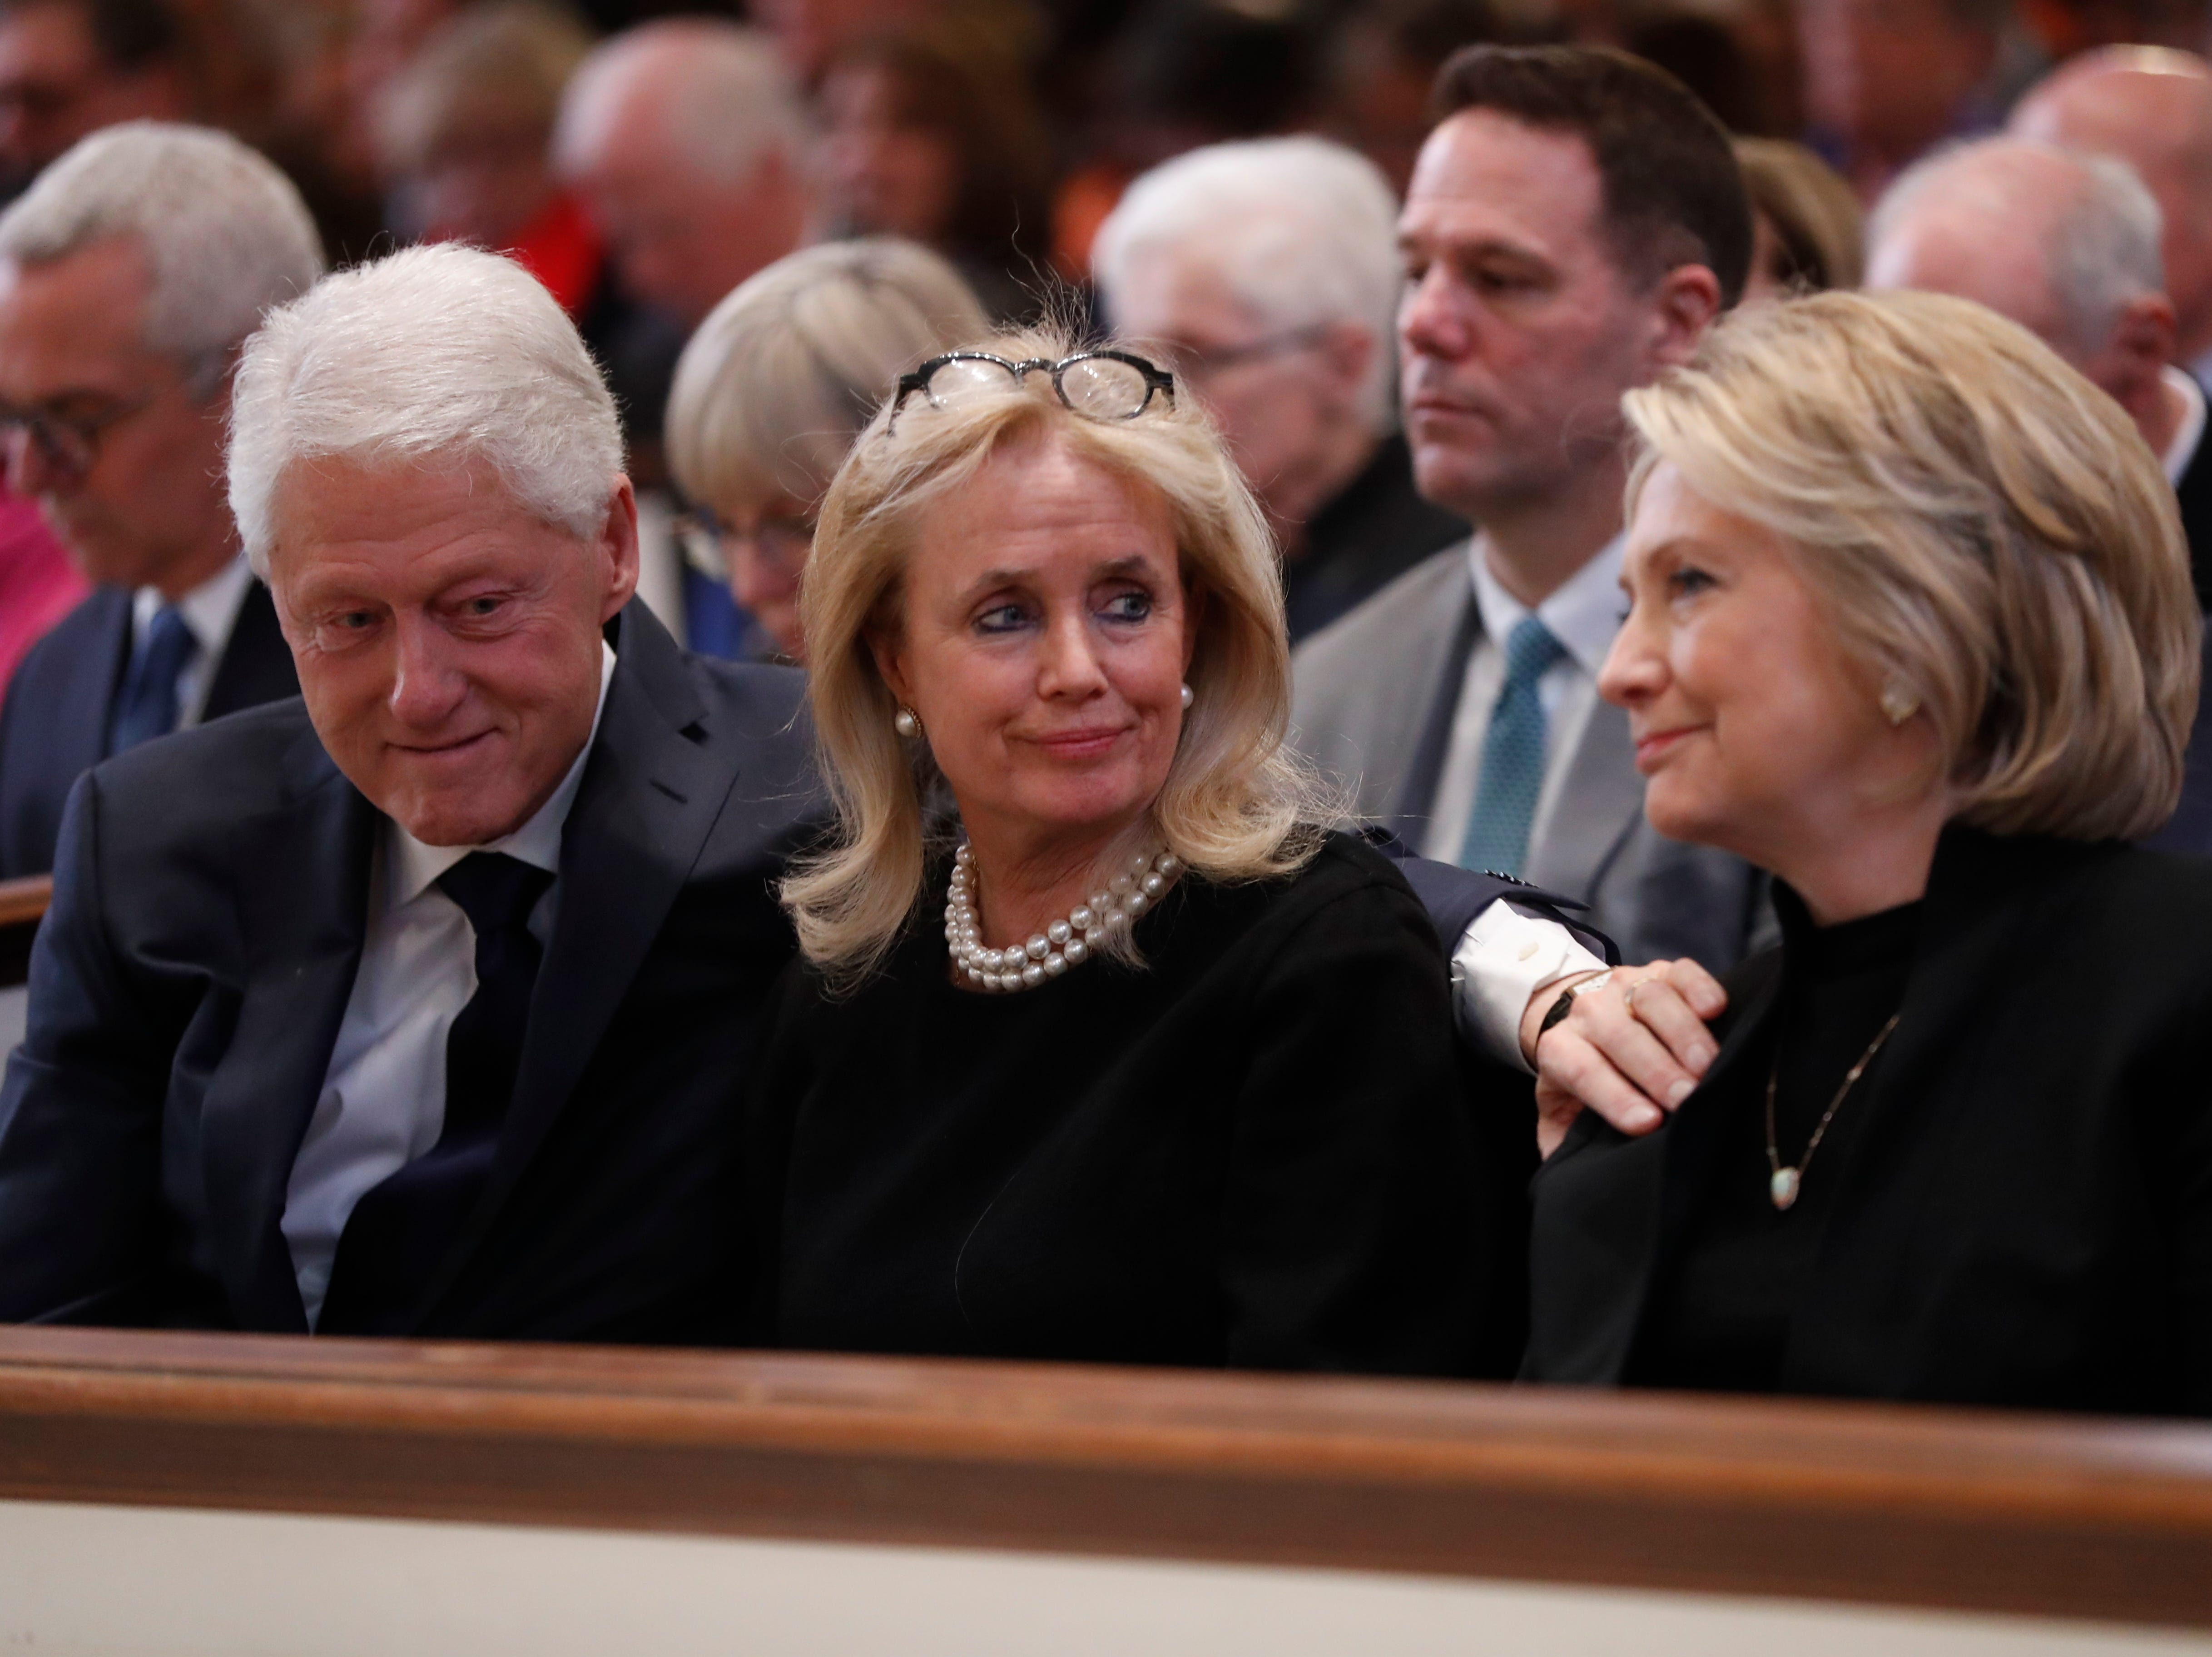 Rep. Debbie Dingell, D-Dearborn, center, talks with former President Bill Clinton and former Secretary of State Hillary Clinton during the funeral for her husband, former Rep. John Dingell, Thursday, Feb. 14, 2019 at Holy Trinity Catholic Church in Washington. Dingell, who represented southeast Michigan for 59 years in the House of Representatives, died last week at age 92.